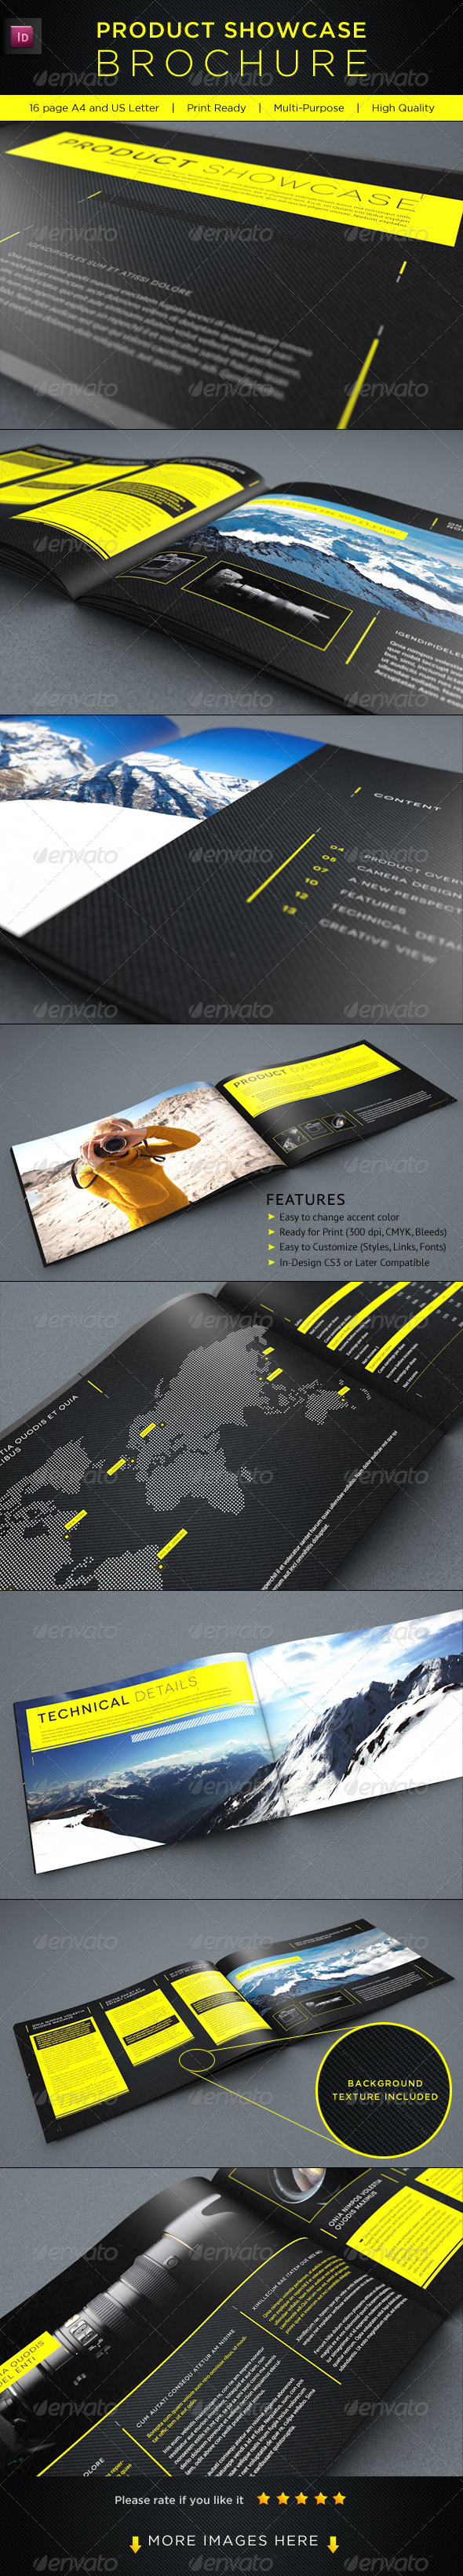 Product Showcase Brochure - Corporate Brochures